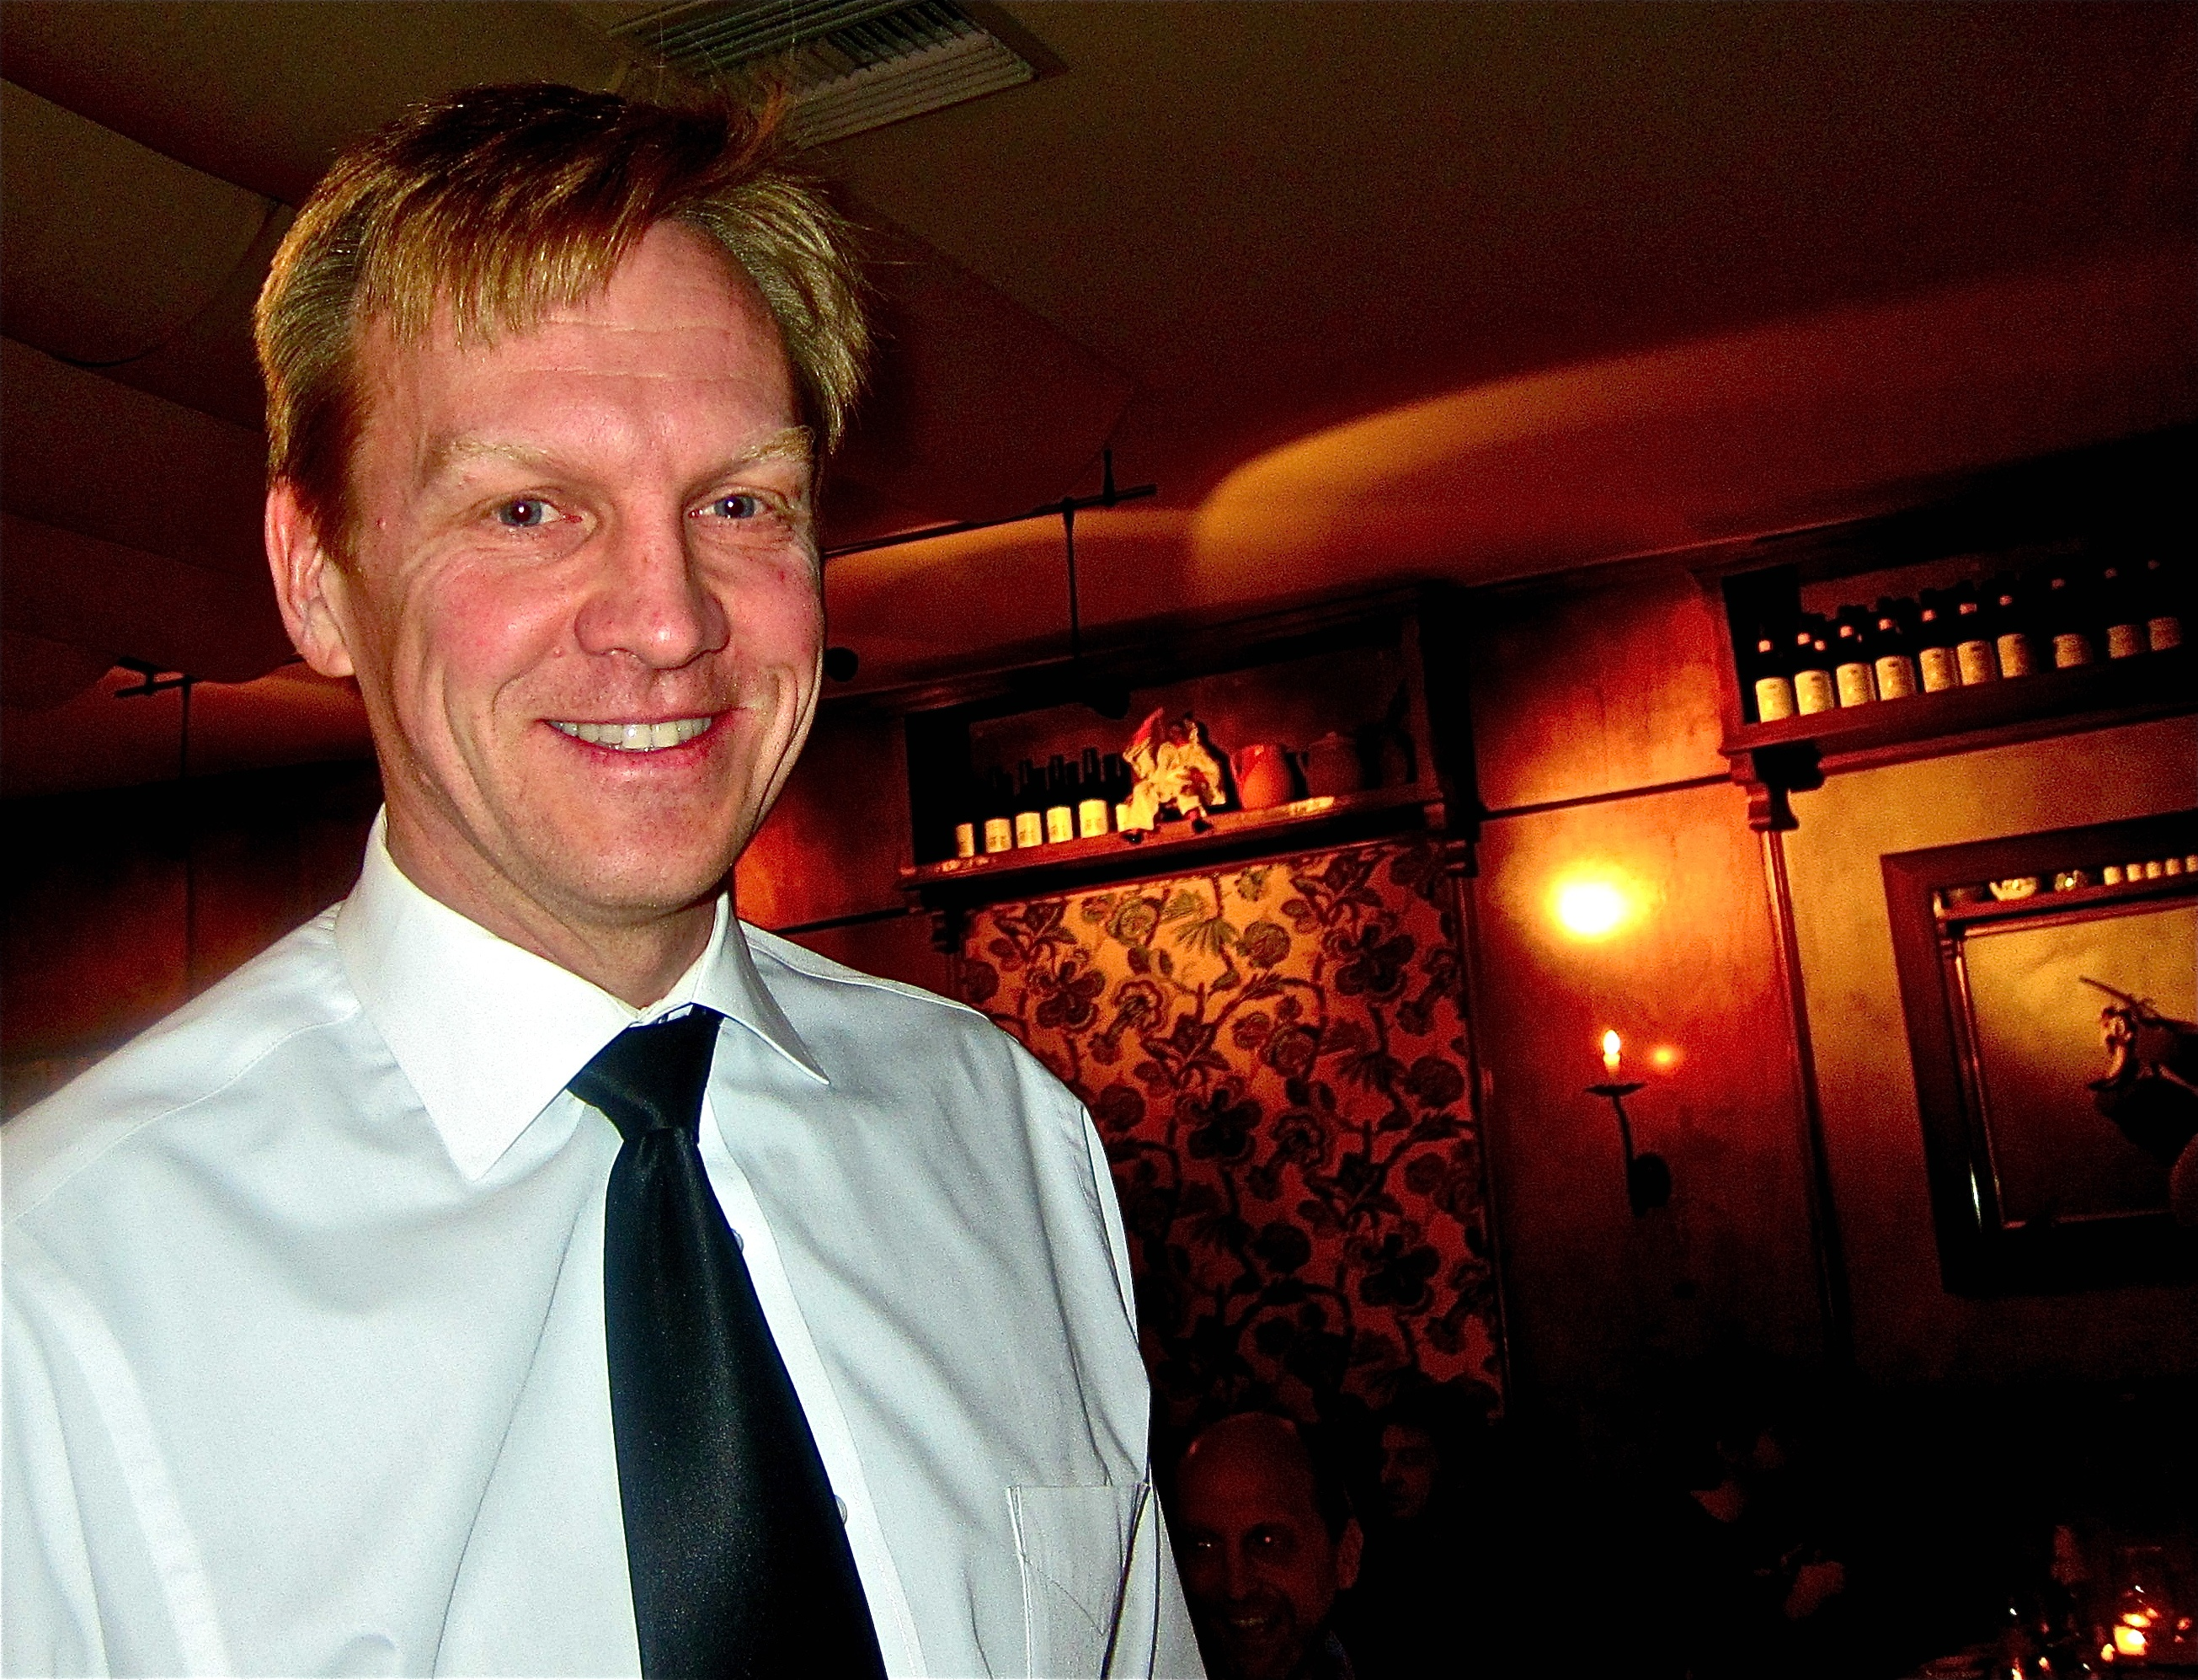 andrea, manager,head waiter and 'the man'